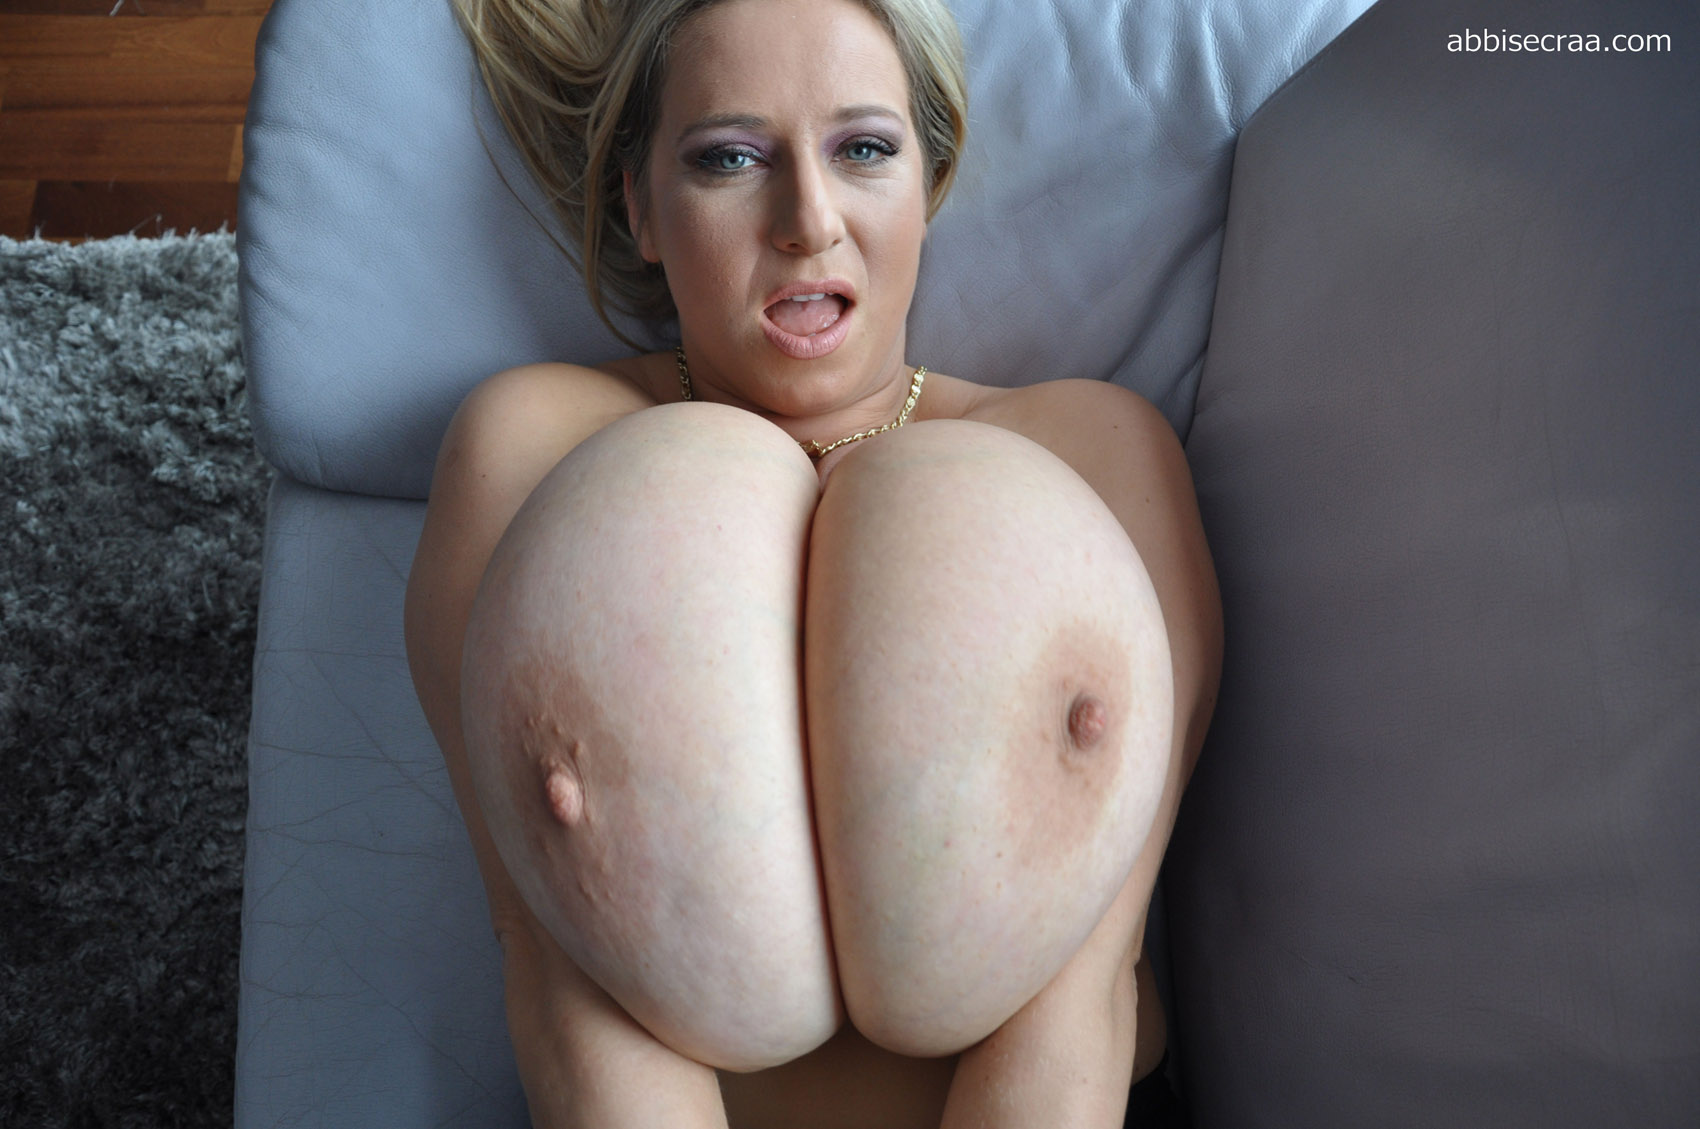 Join. And Big boobs abbi secraa cumshot join